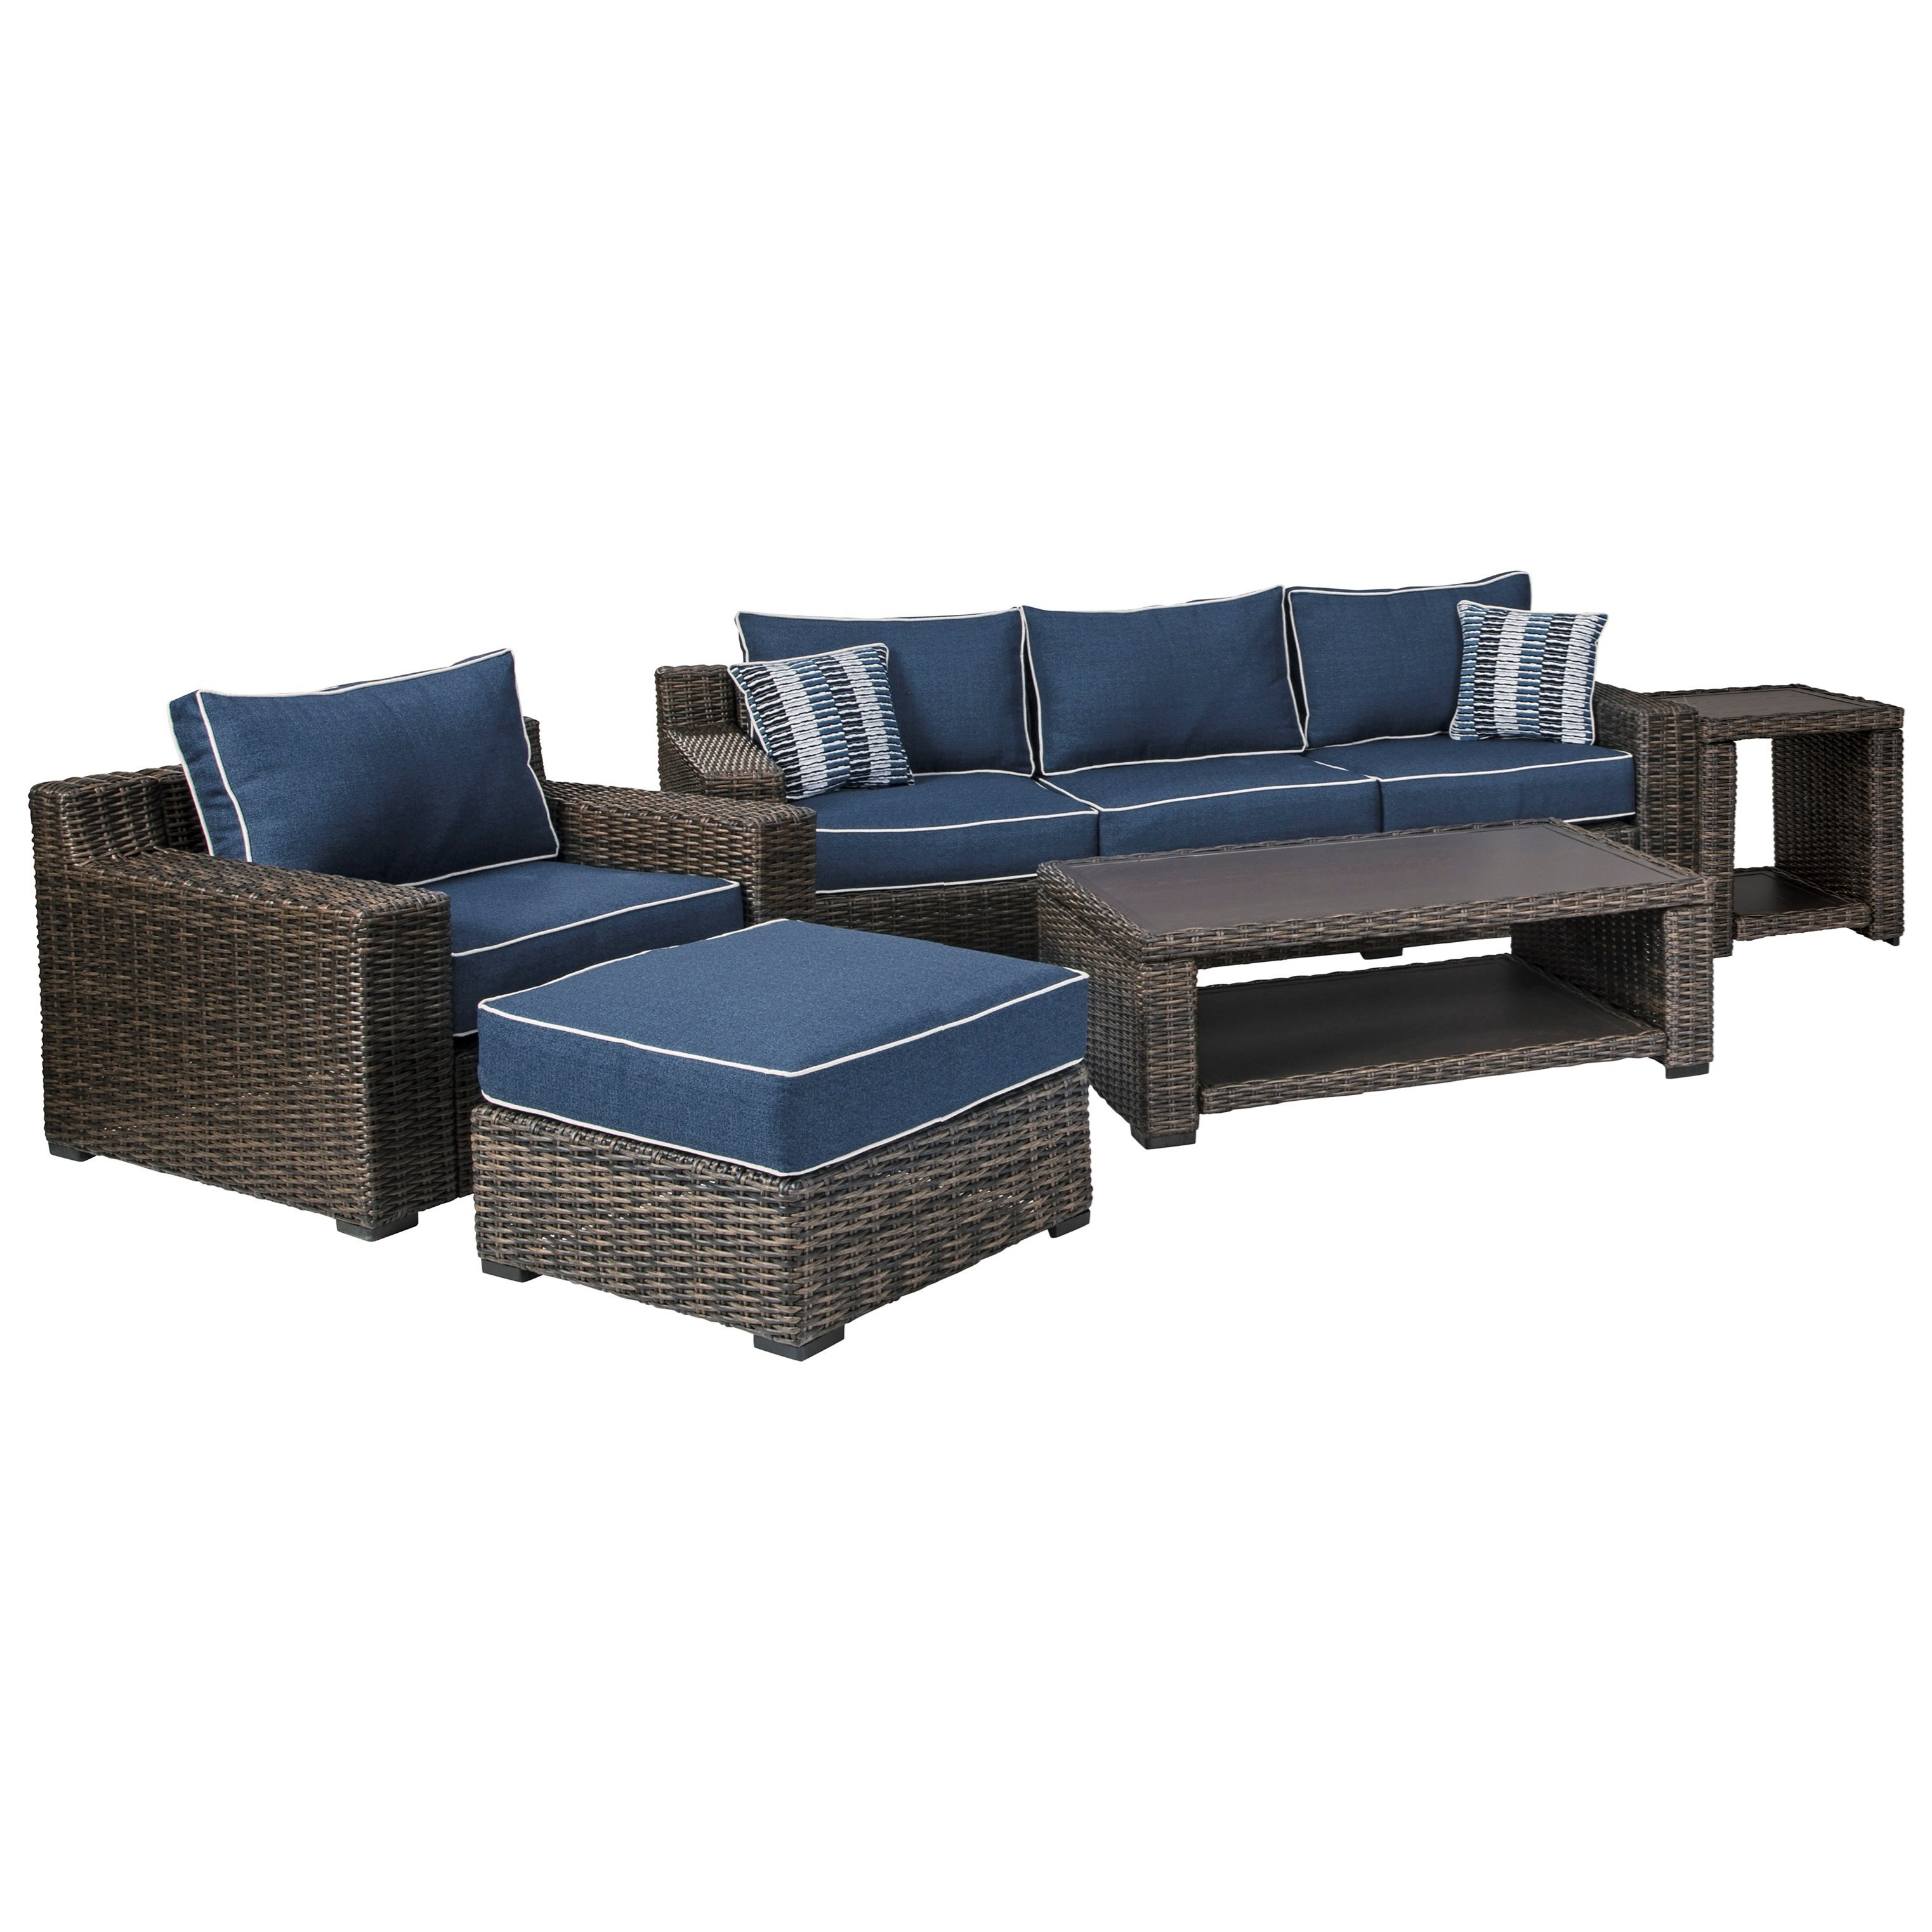 Grasson Lane 5 Pc. Outdoor Seating Group by Signature Design by Ashley at Zak's Home